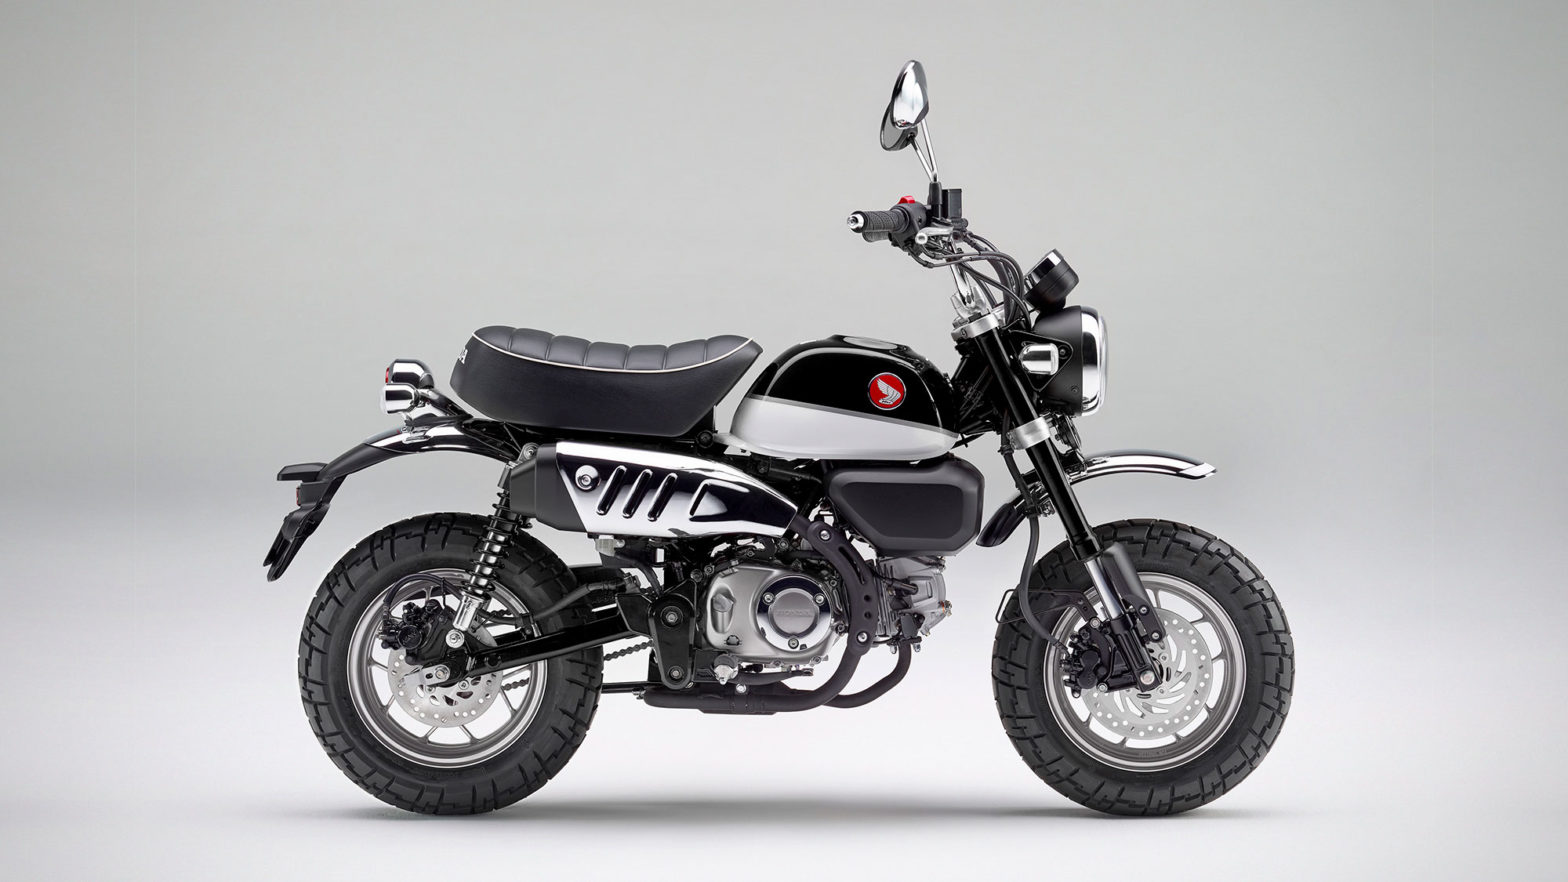 2020 Honda Monkey 125 Motorcycle